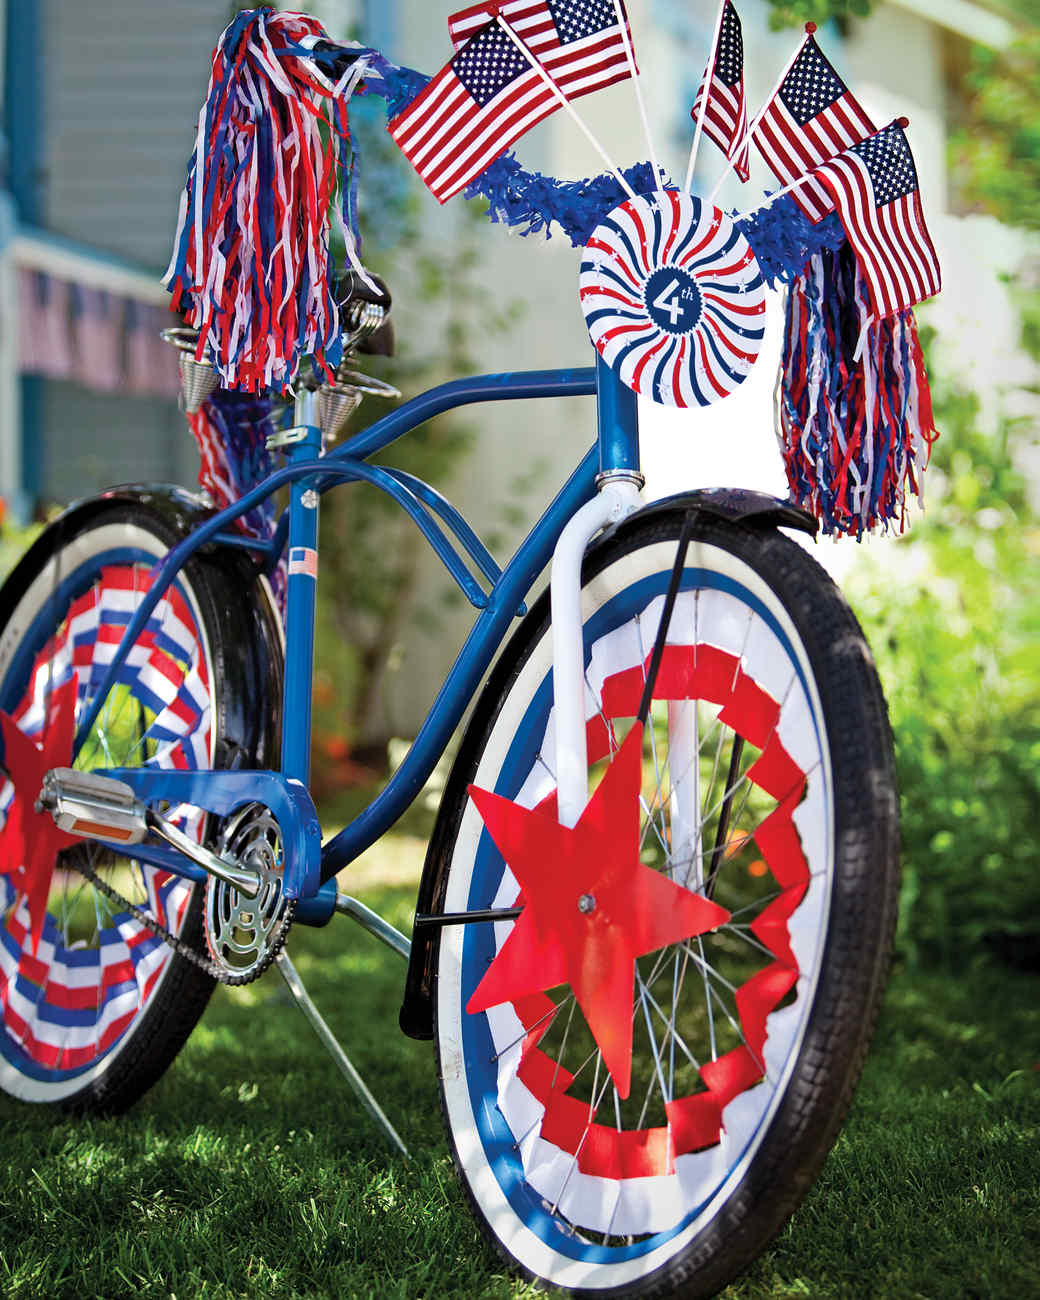 Decorated bike